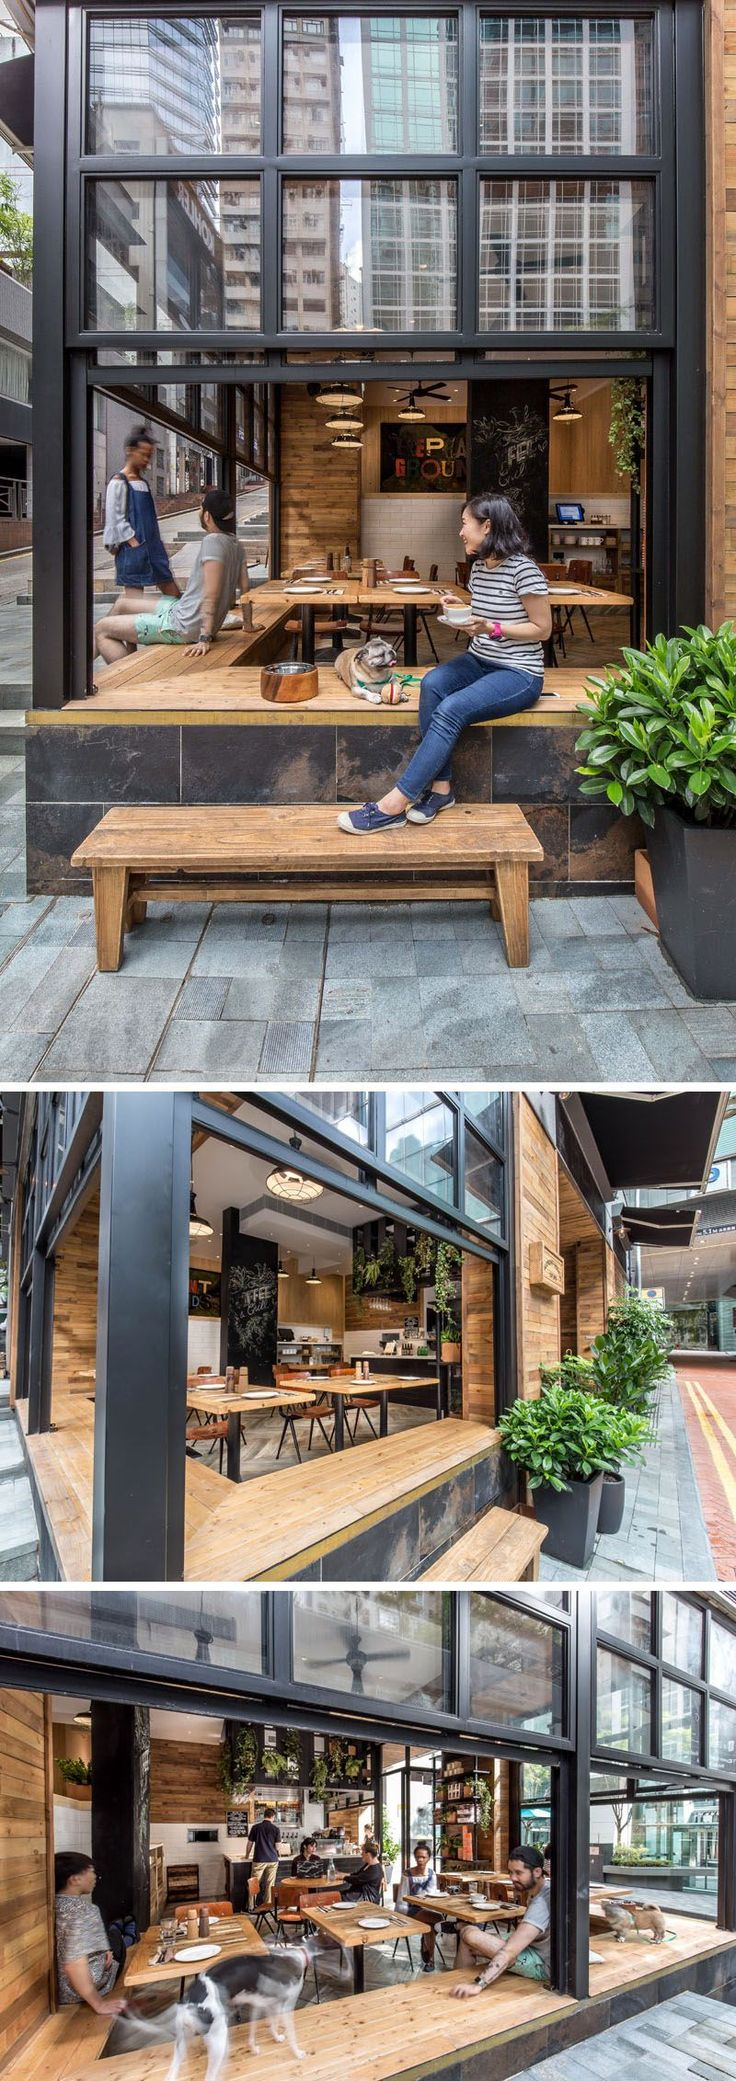 When the weather is nice, the windows of this cafe are opened up and people can…